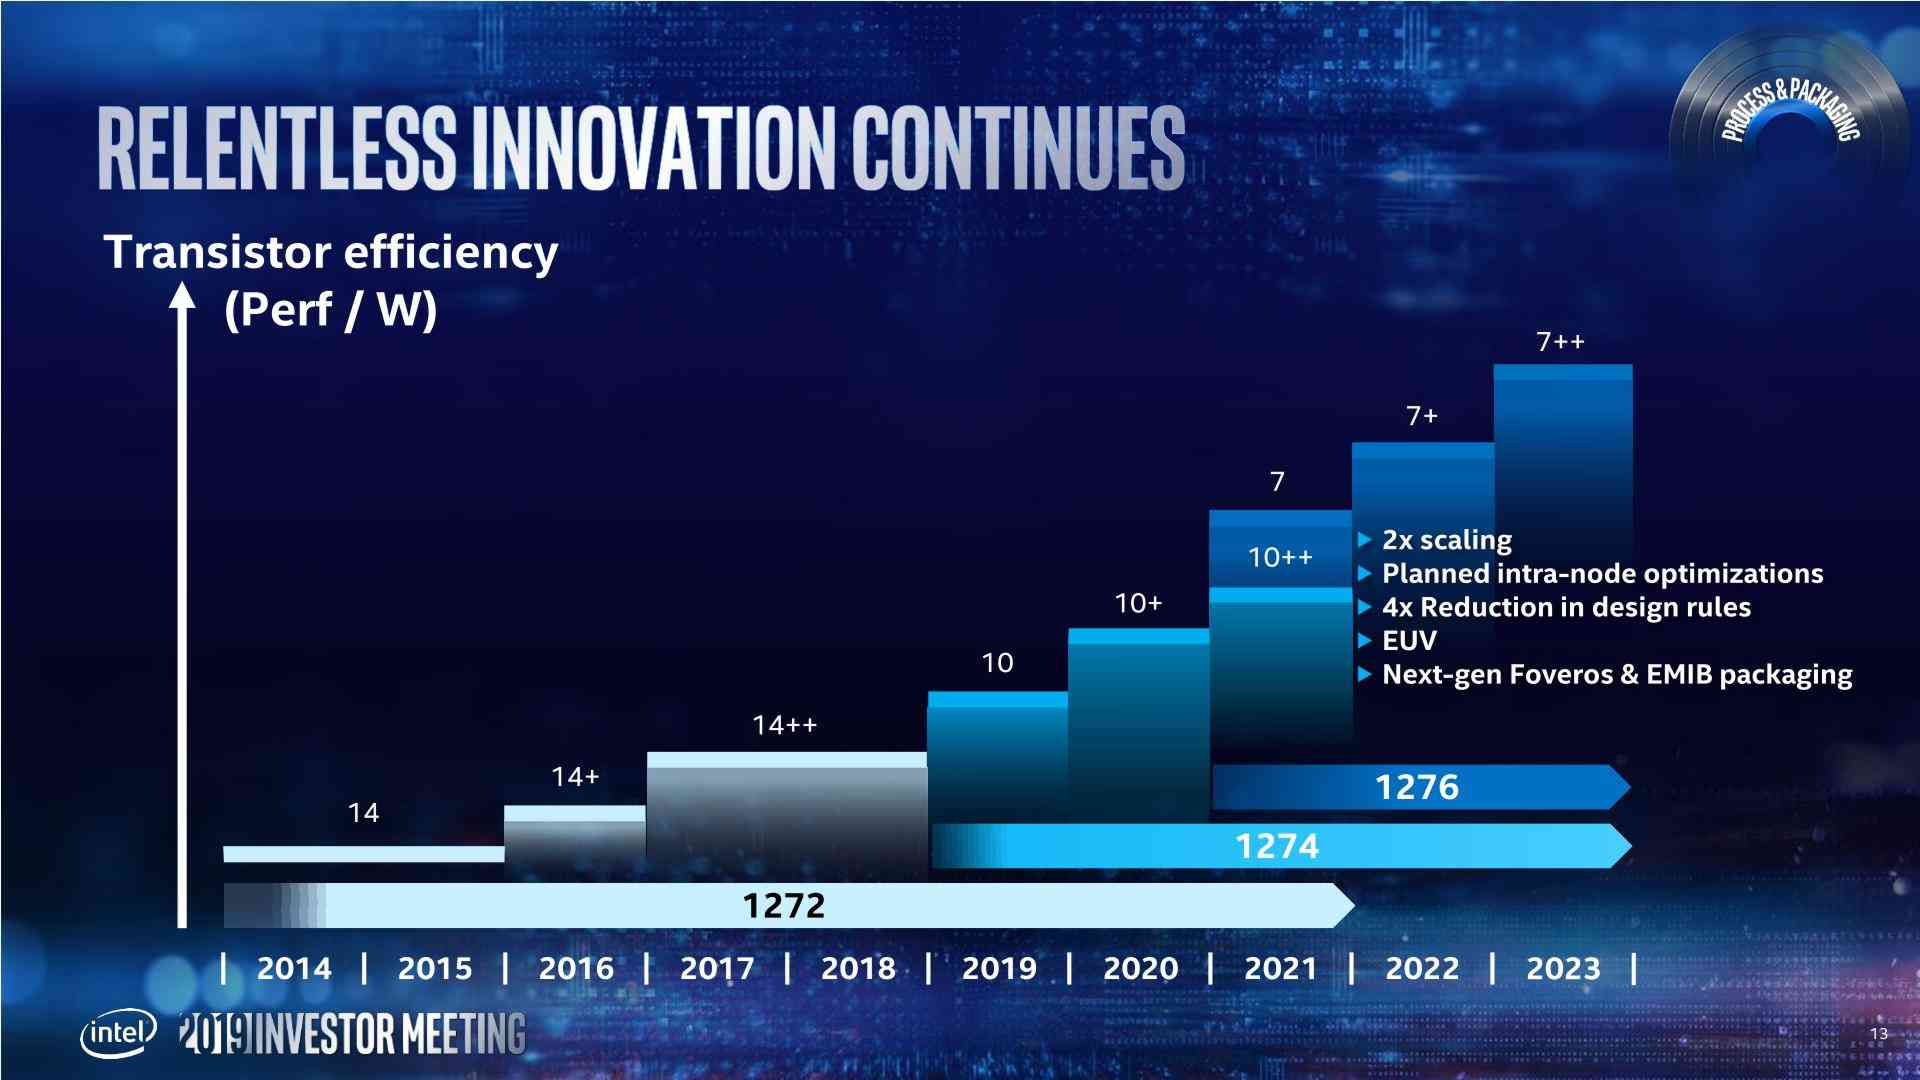 Intel's road map from 2019 Investor meeting